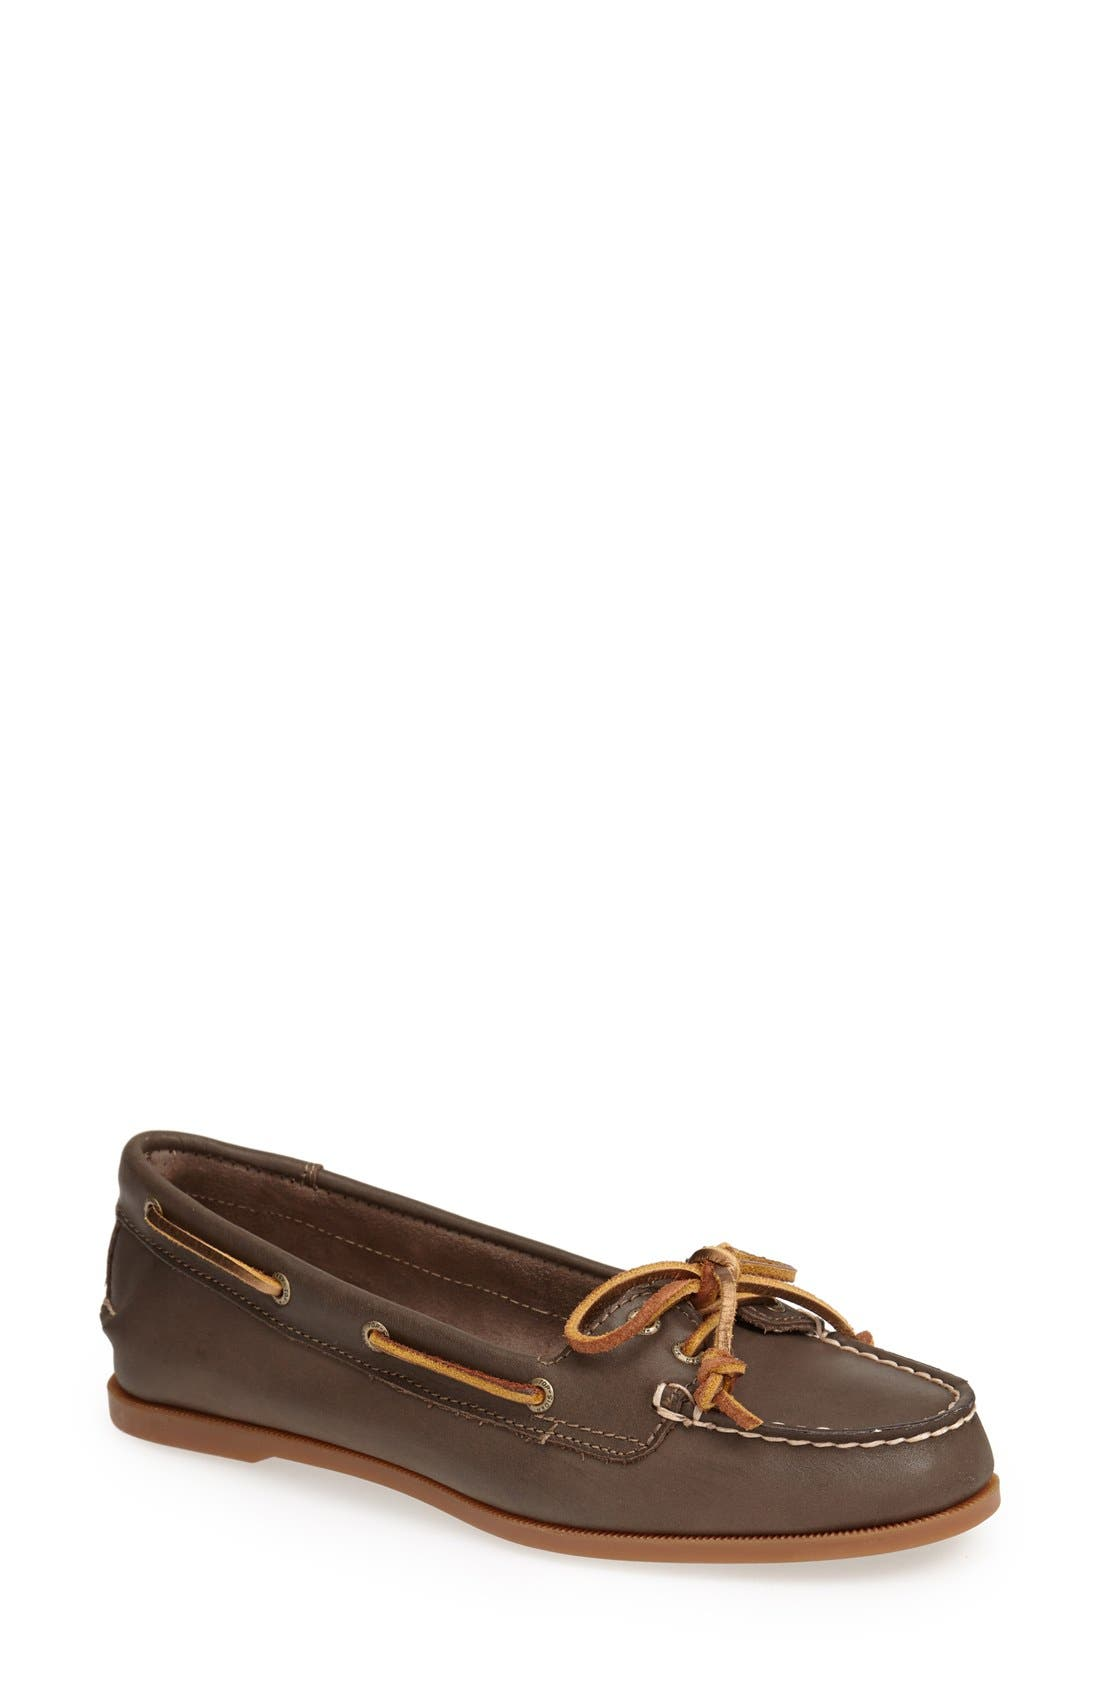 Alternate Image 1 Selected - Sperry Top-Sider® 'Audrey' Boat Shoe